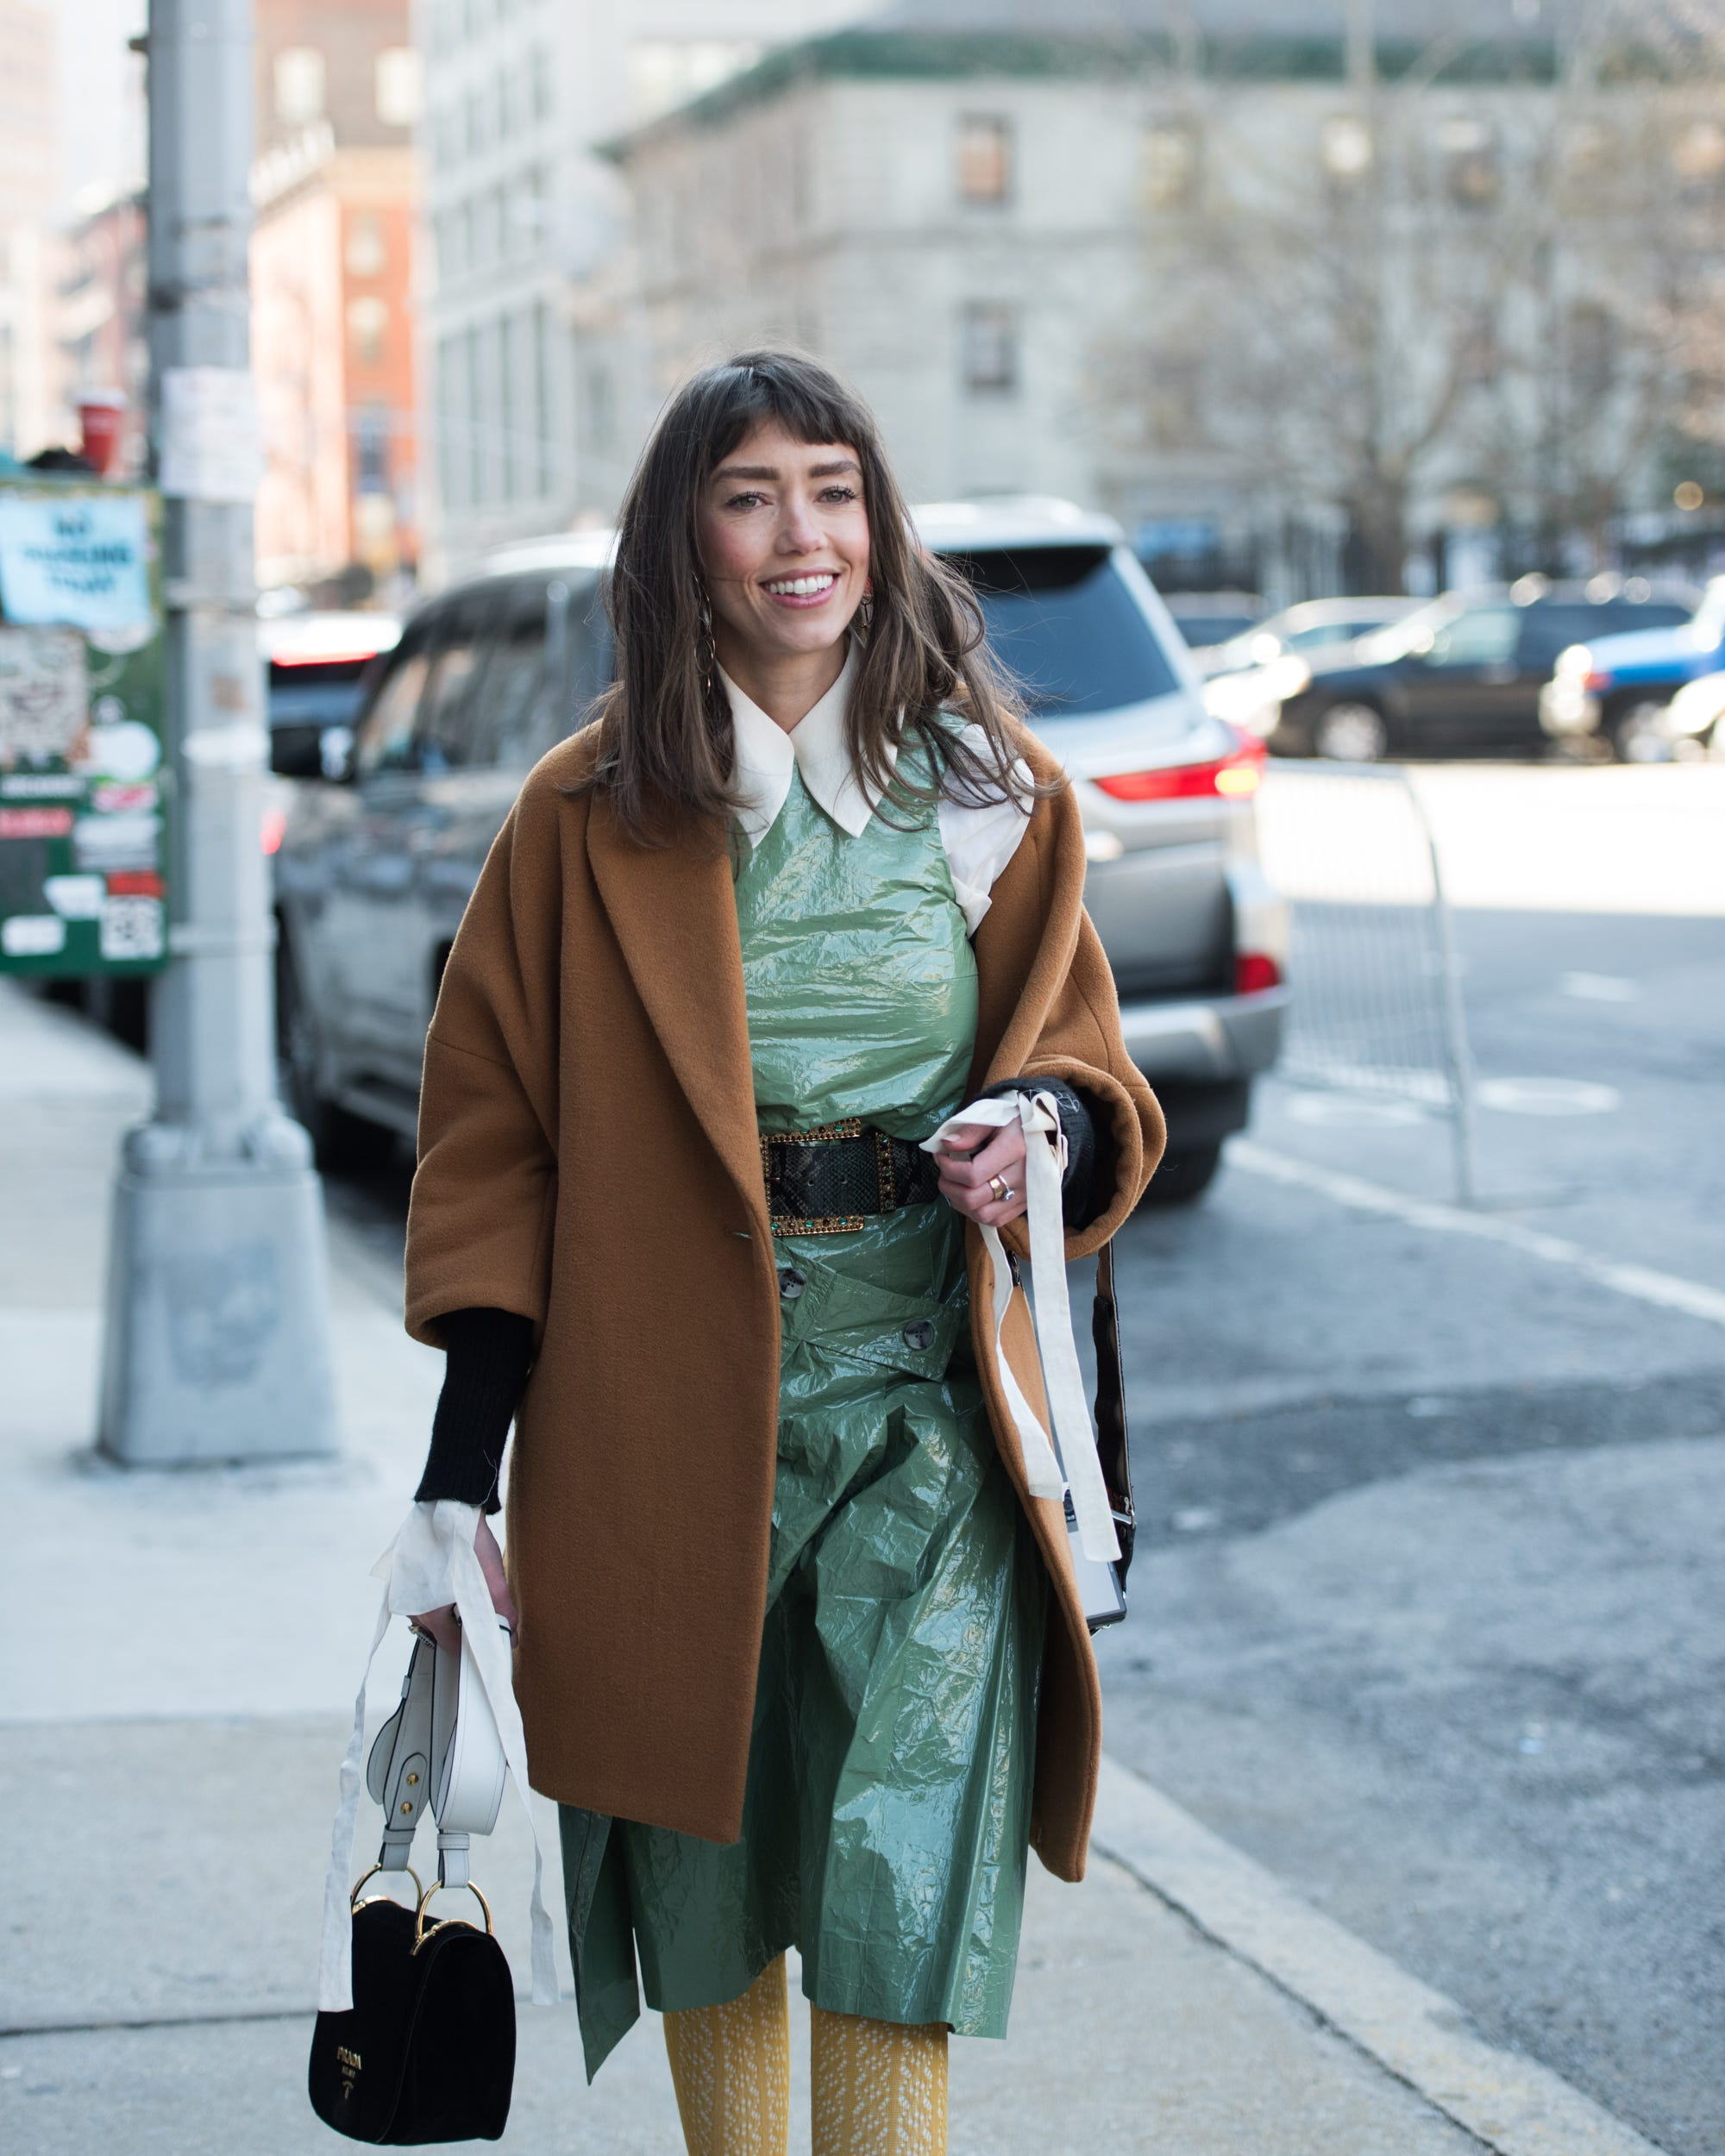 e680f600a3c6 New York Fashion Week Winter 2018 Best Street Style